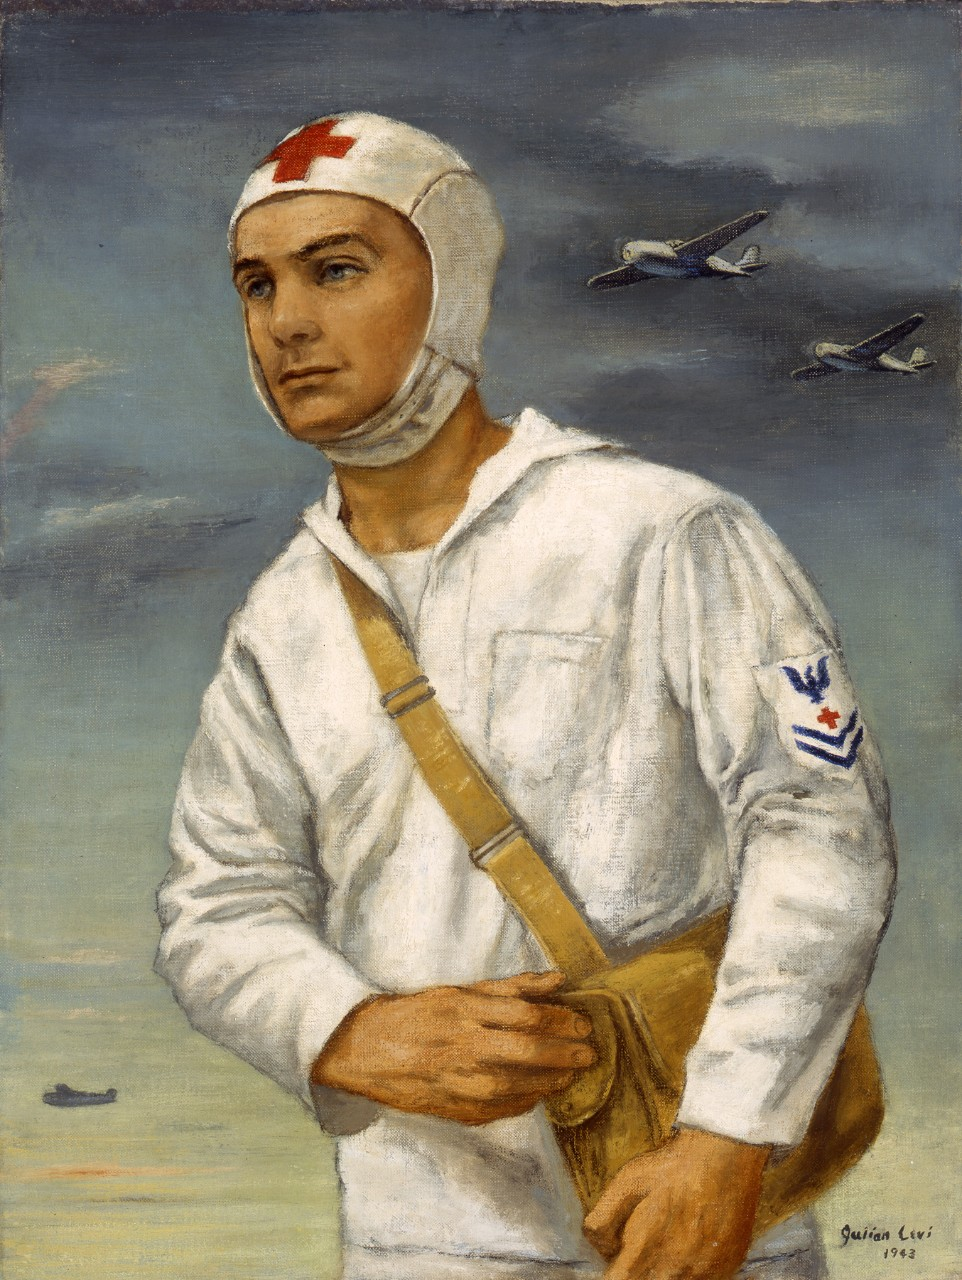 A portrait of a corpsman on an aircraft carrier